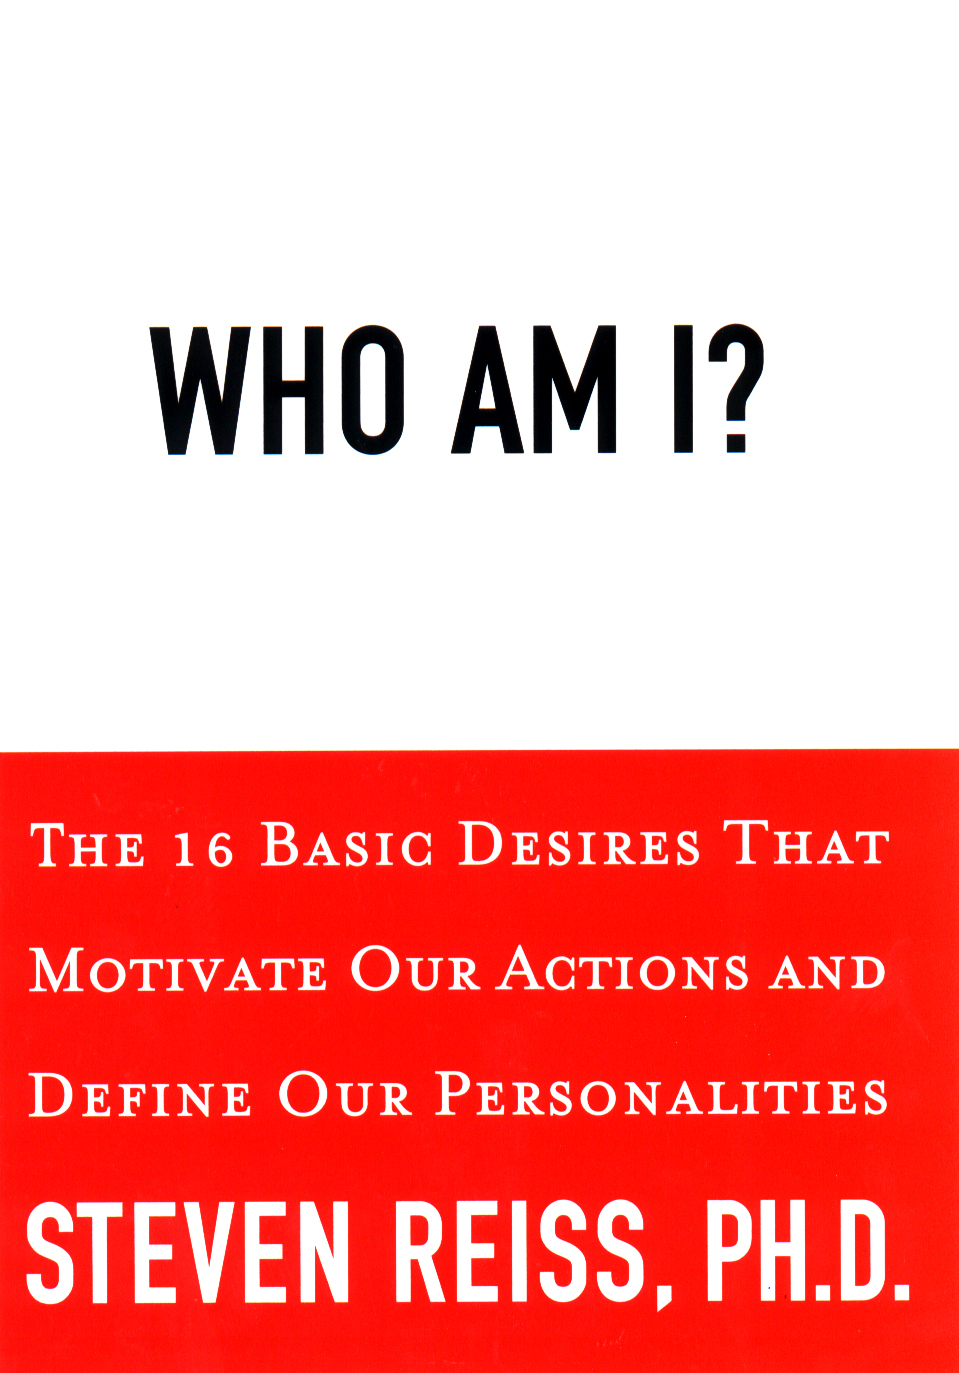 Who am I?: 16 Basic Desires that Motivate Our Actions Define Our Persona: 16 Basic Desires that Motivate Our Actions Define Our Persona